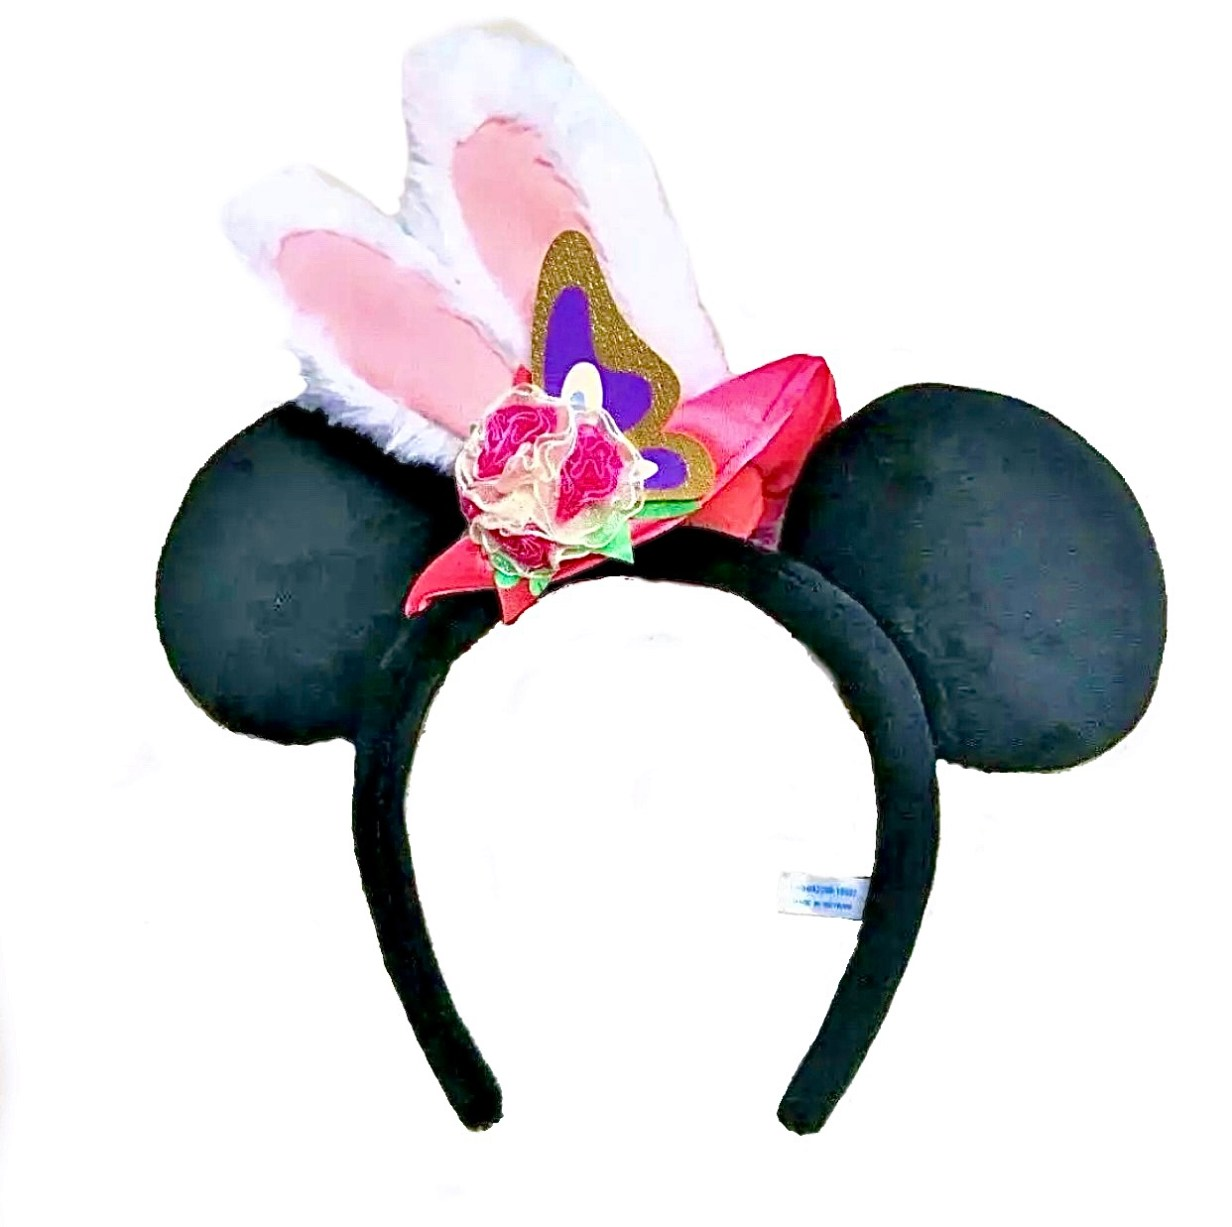 Send one to friends and family as a nice surprise on halloween or the days leading to it. Disney's Easter 2019 Ears - TDS - Minnie Ear Collectors